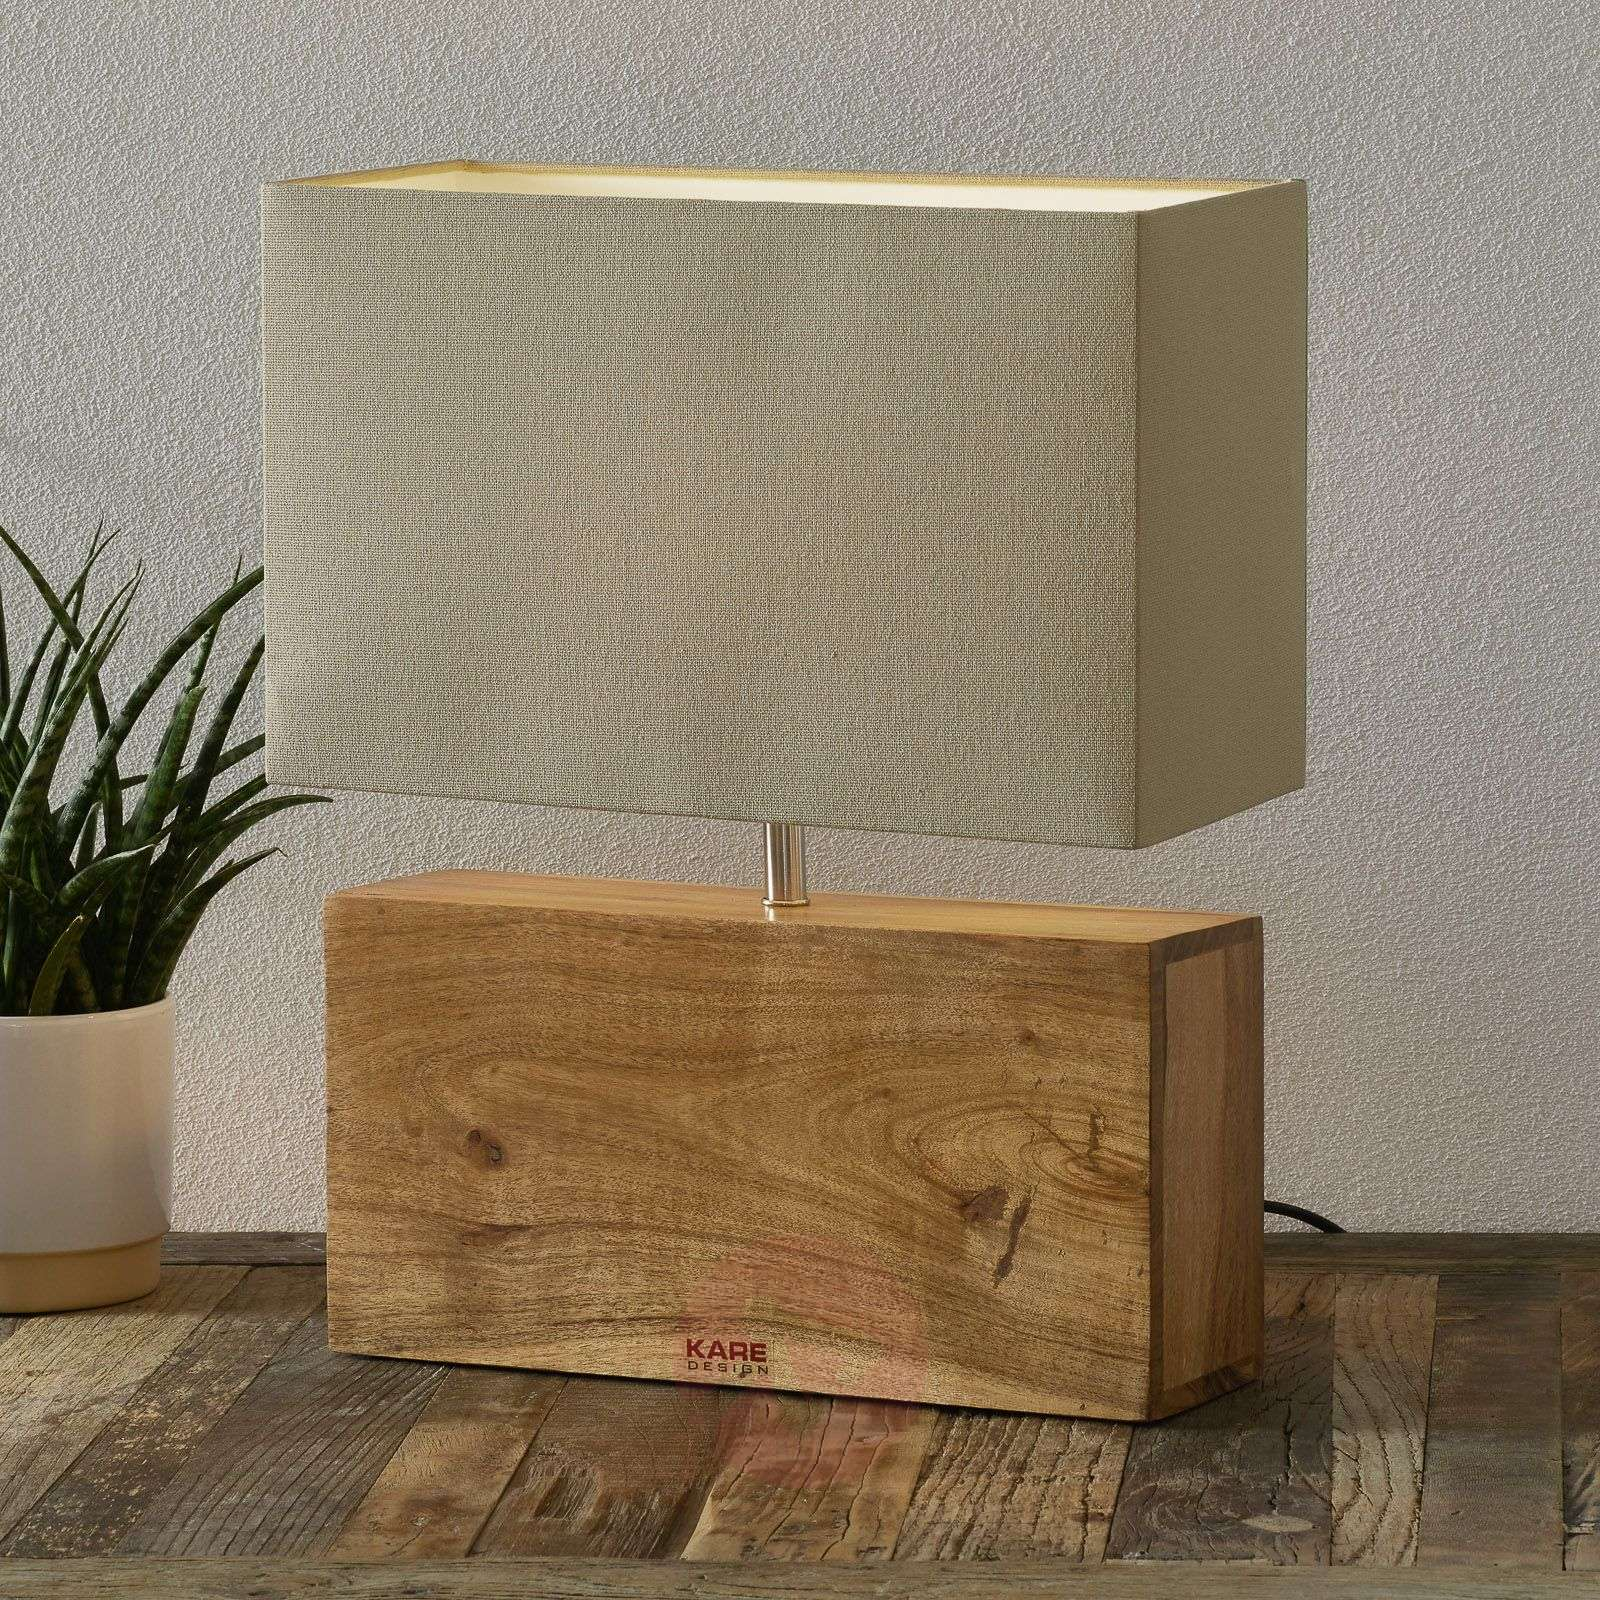 Table lamp rectangular wood with wooden base lights table lamp rectangular wood with wooden base 5517187 01 aloadofball Images